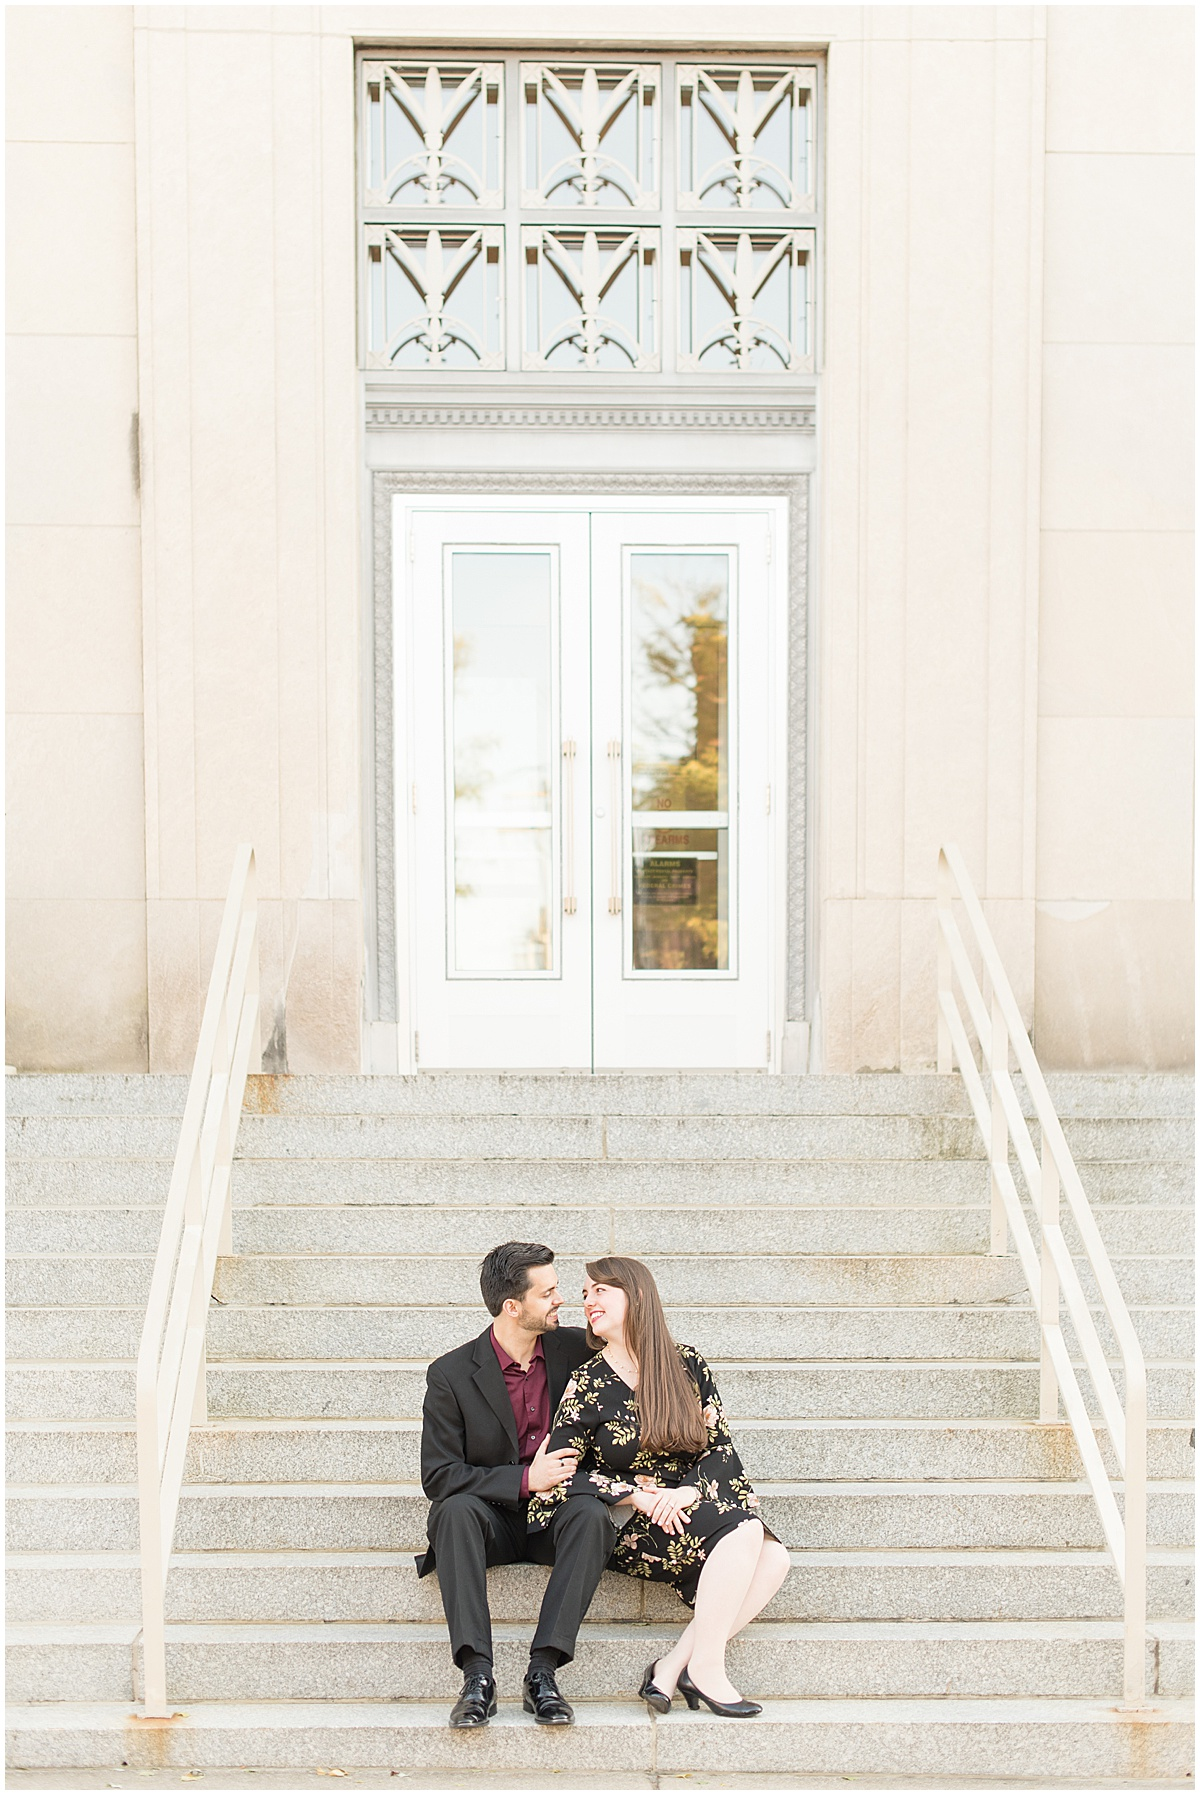 Nick Ballester and Madeline Pingel Engagement Session in Downtown Lafayette Indiana23.jpg